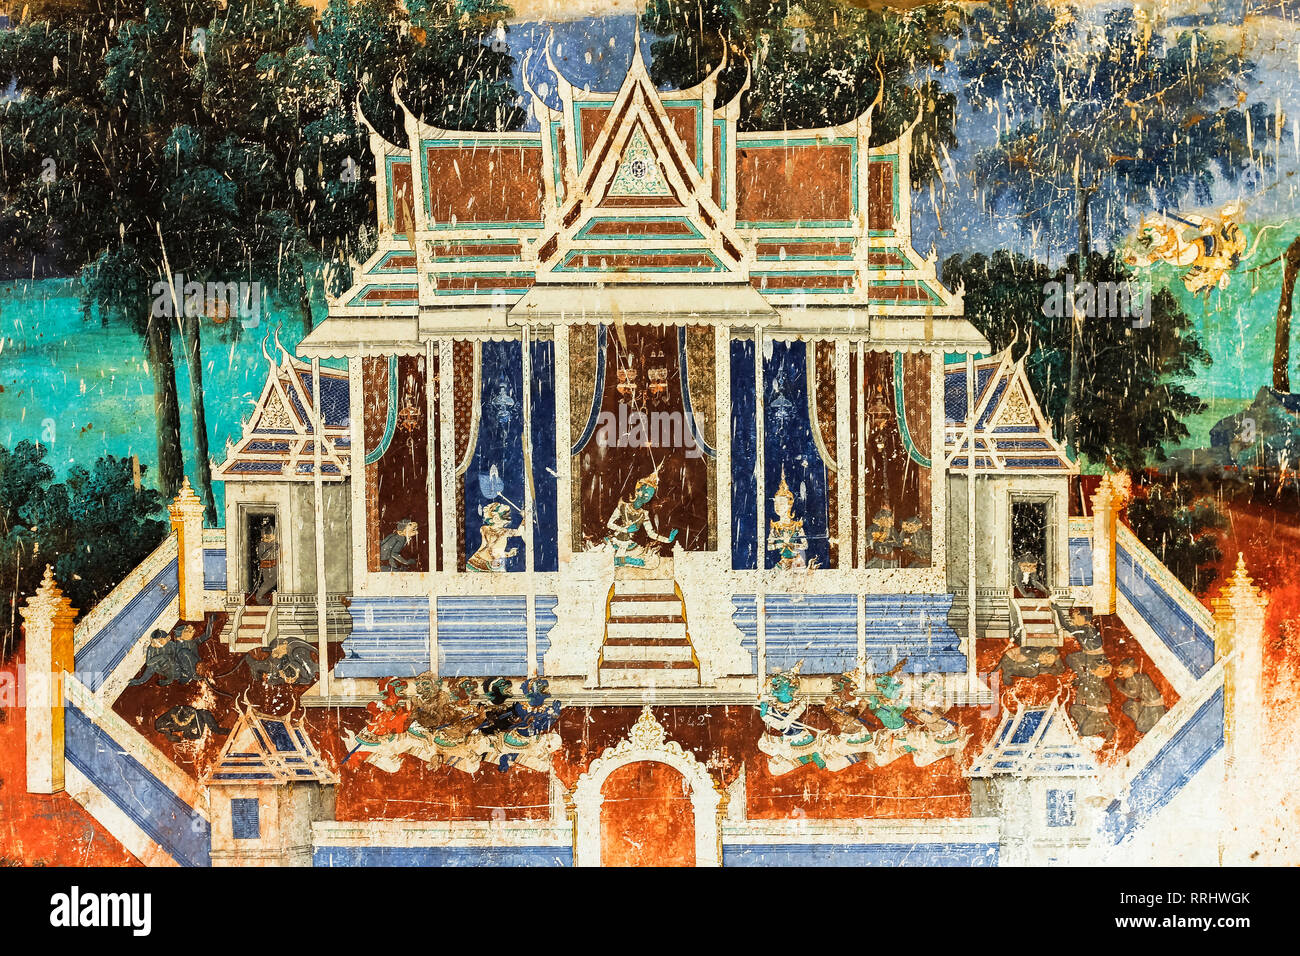 Fresco of the Reamker, the Khmer version of the Ramayana epic poem, Royal Palace cloisters, Royal Palace, Phnom Penh, Cambodia, Indochina - Stock Image